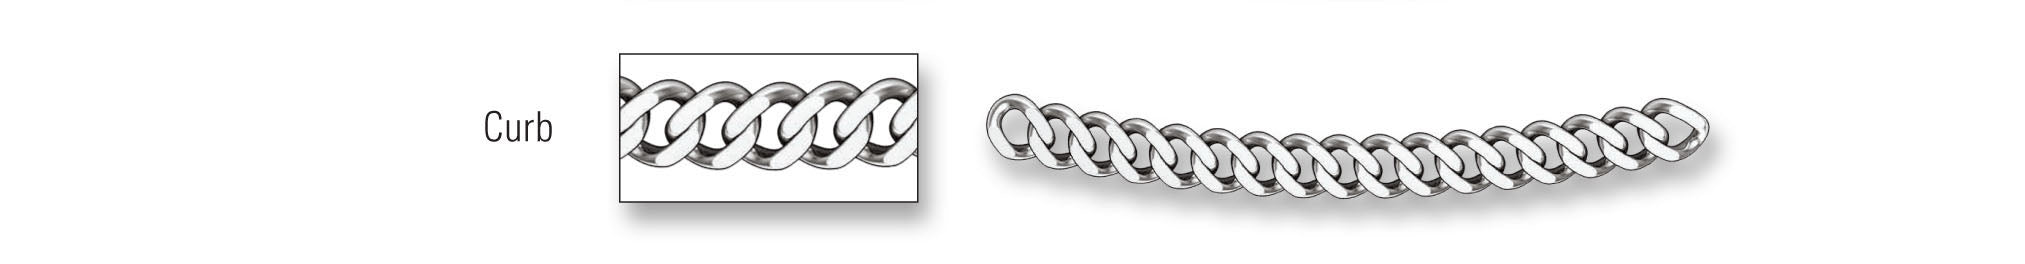 Chains - Curb Link Style Chain Image